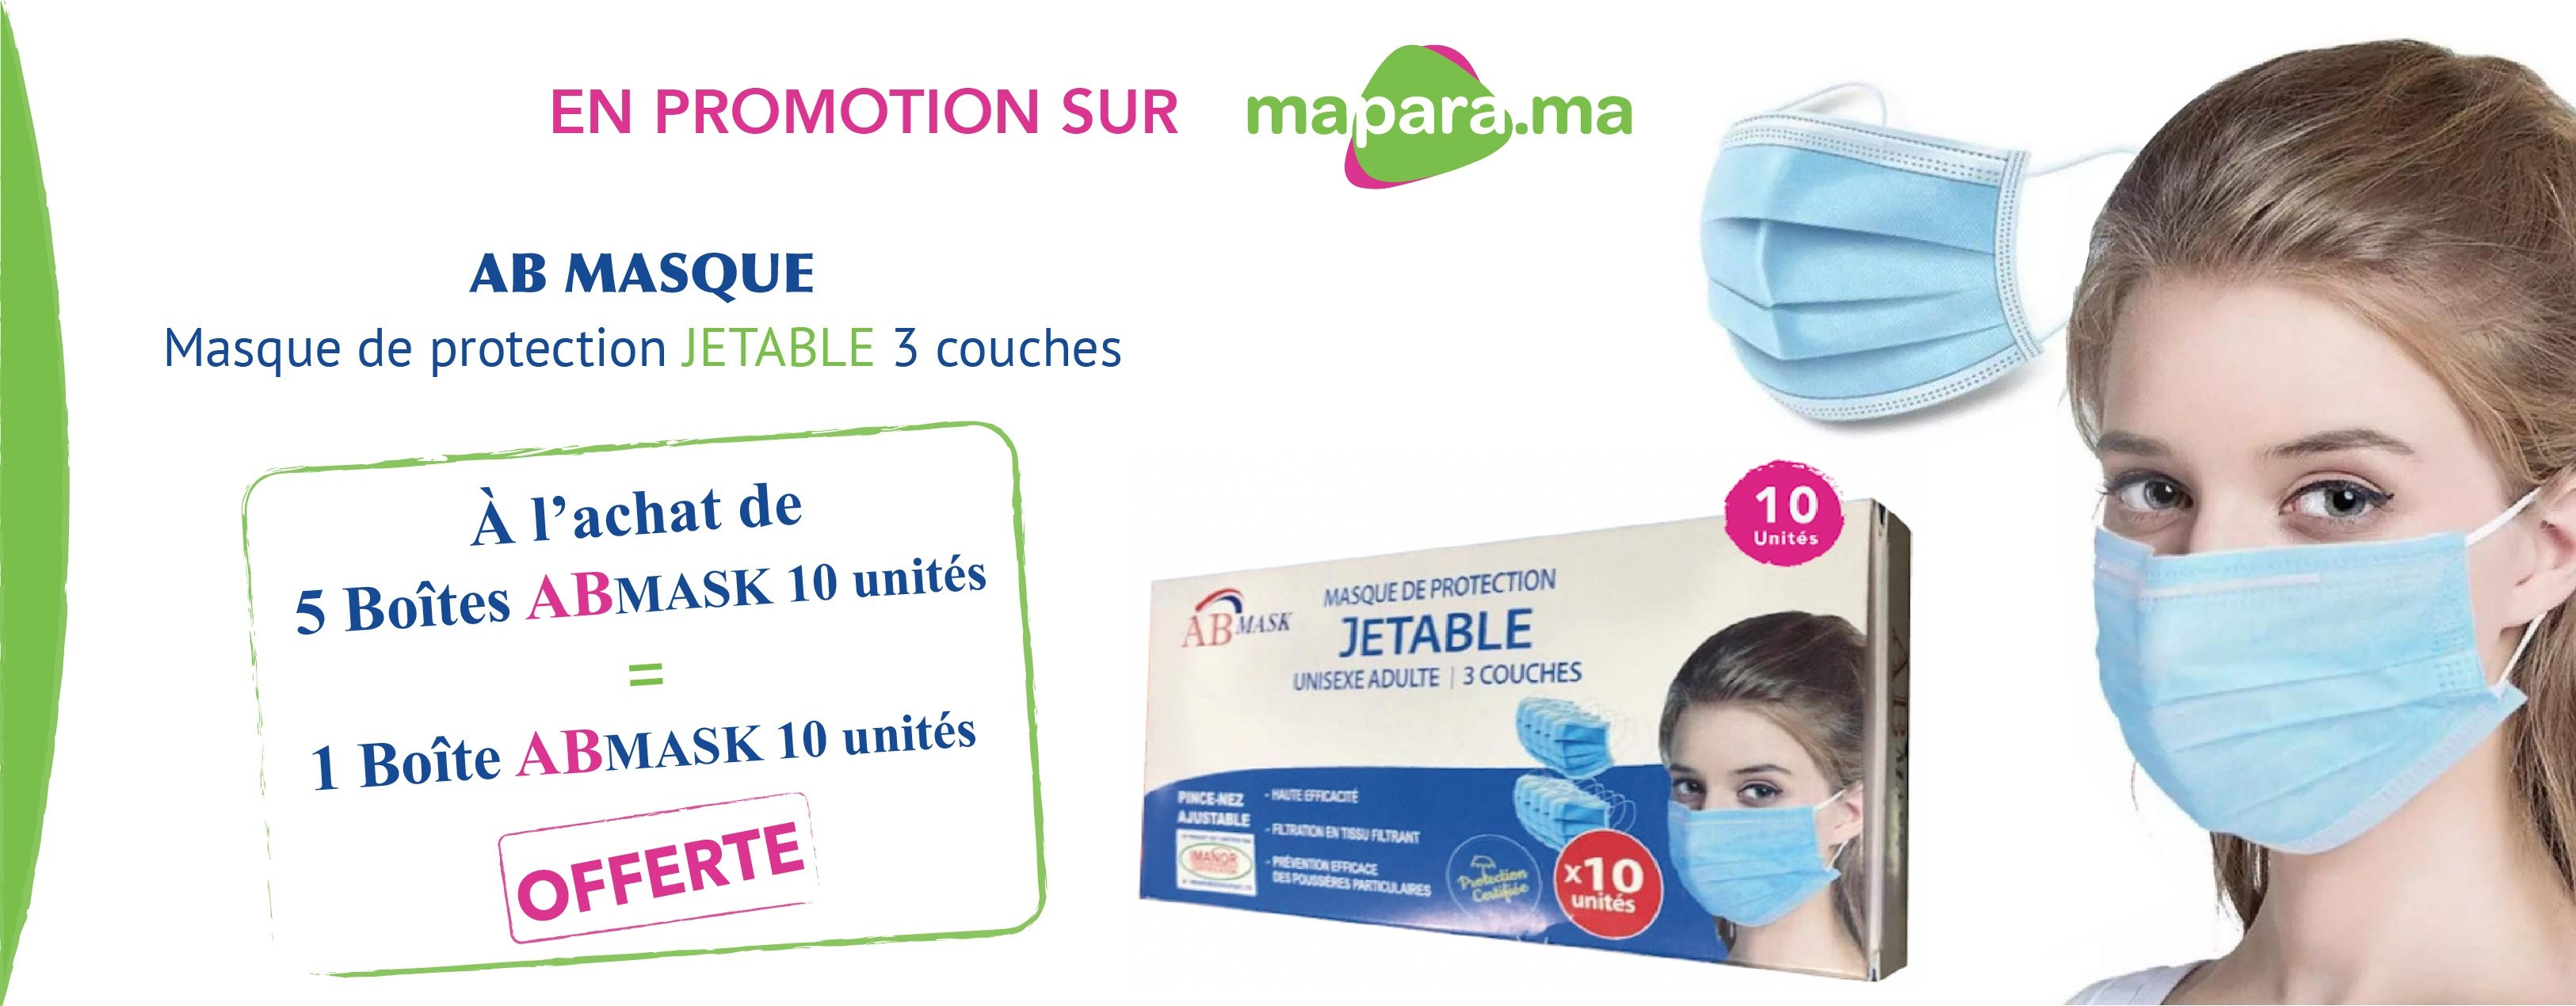 promotions masque